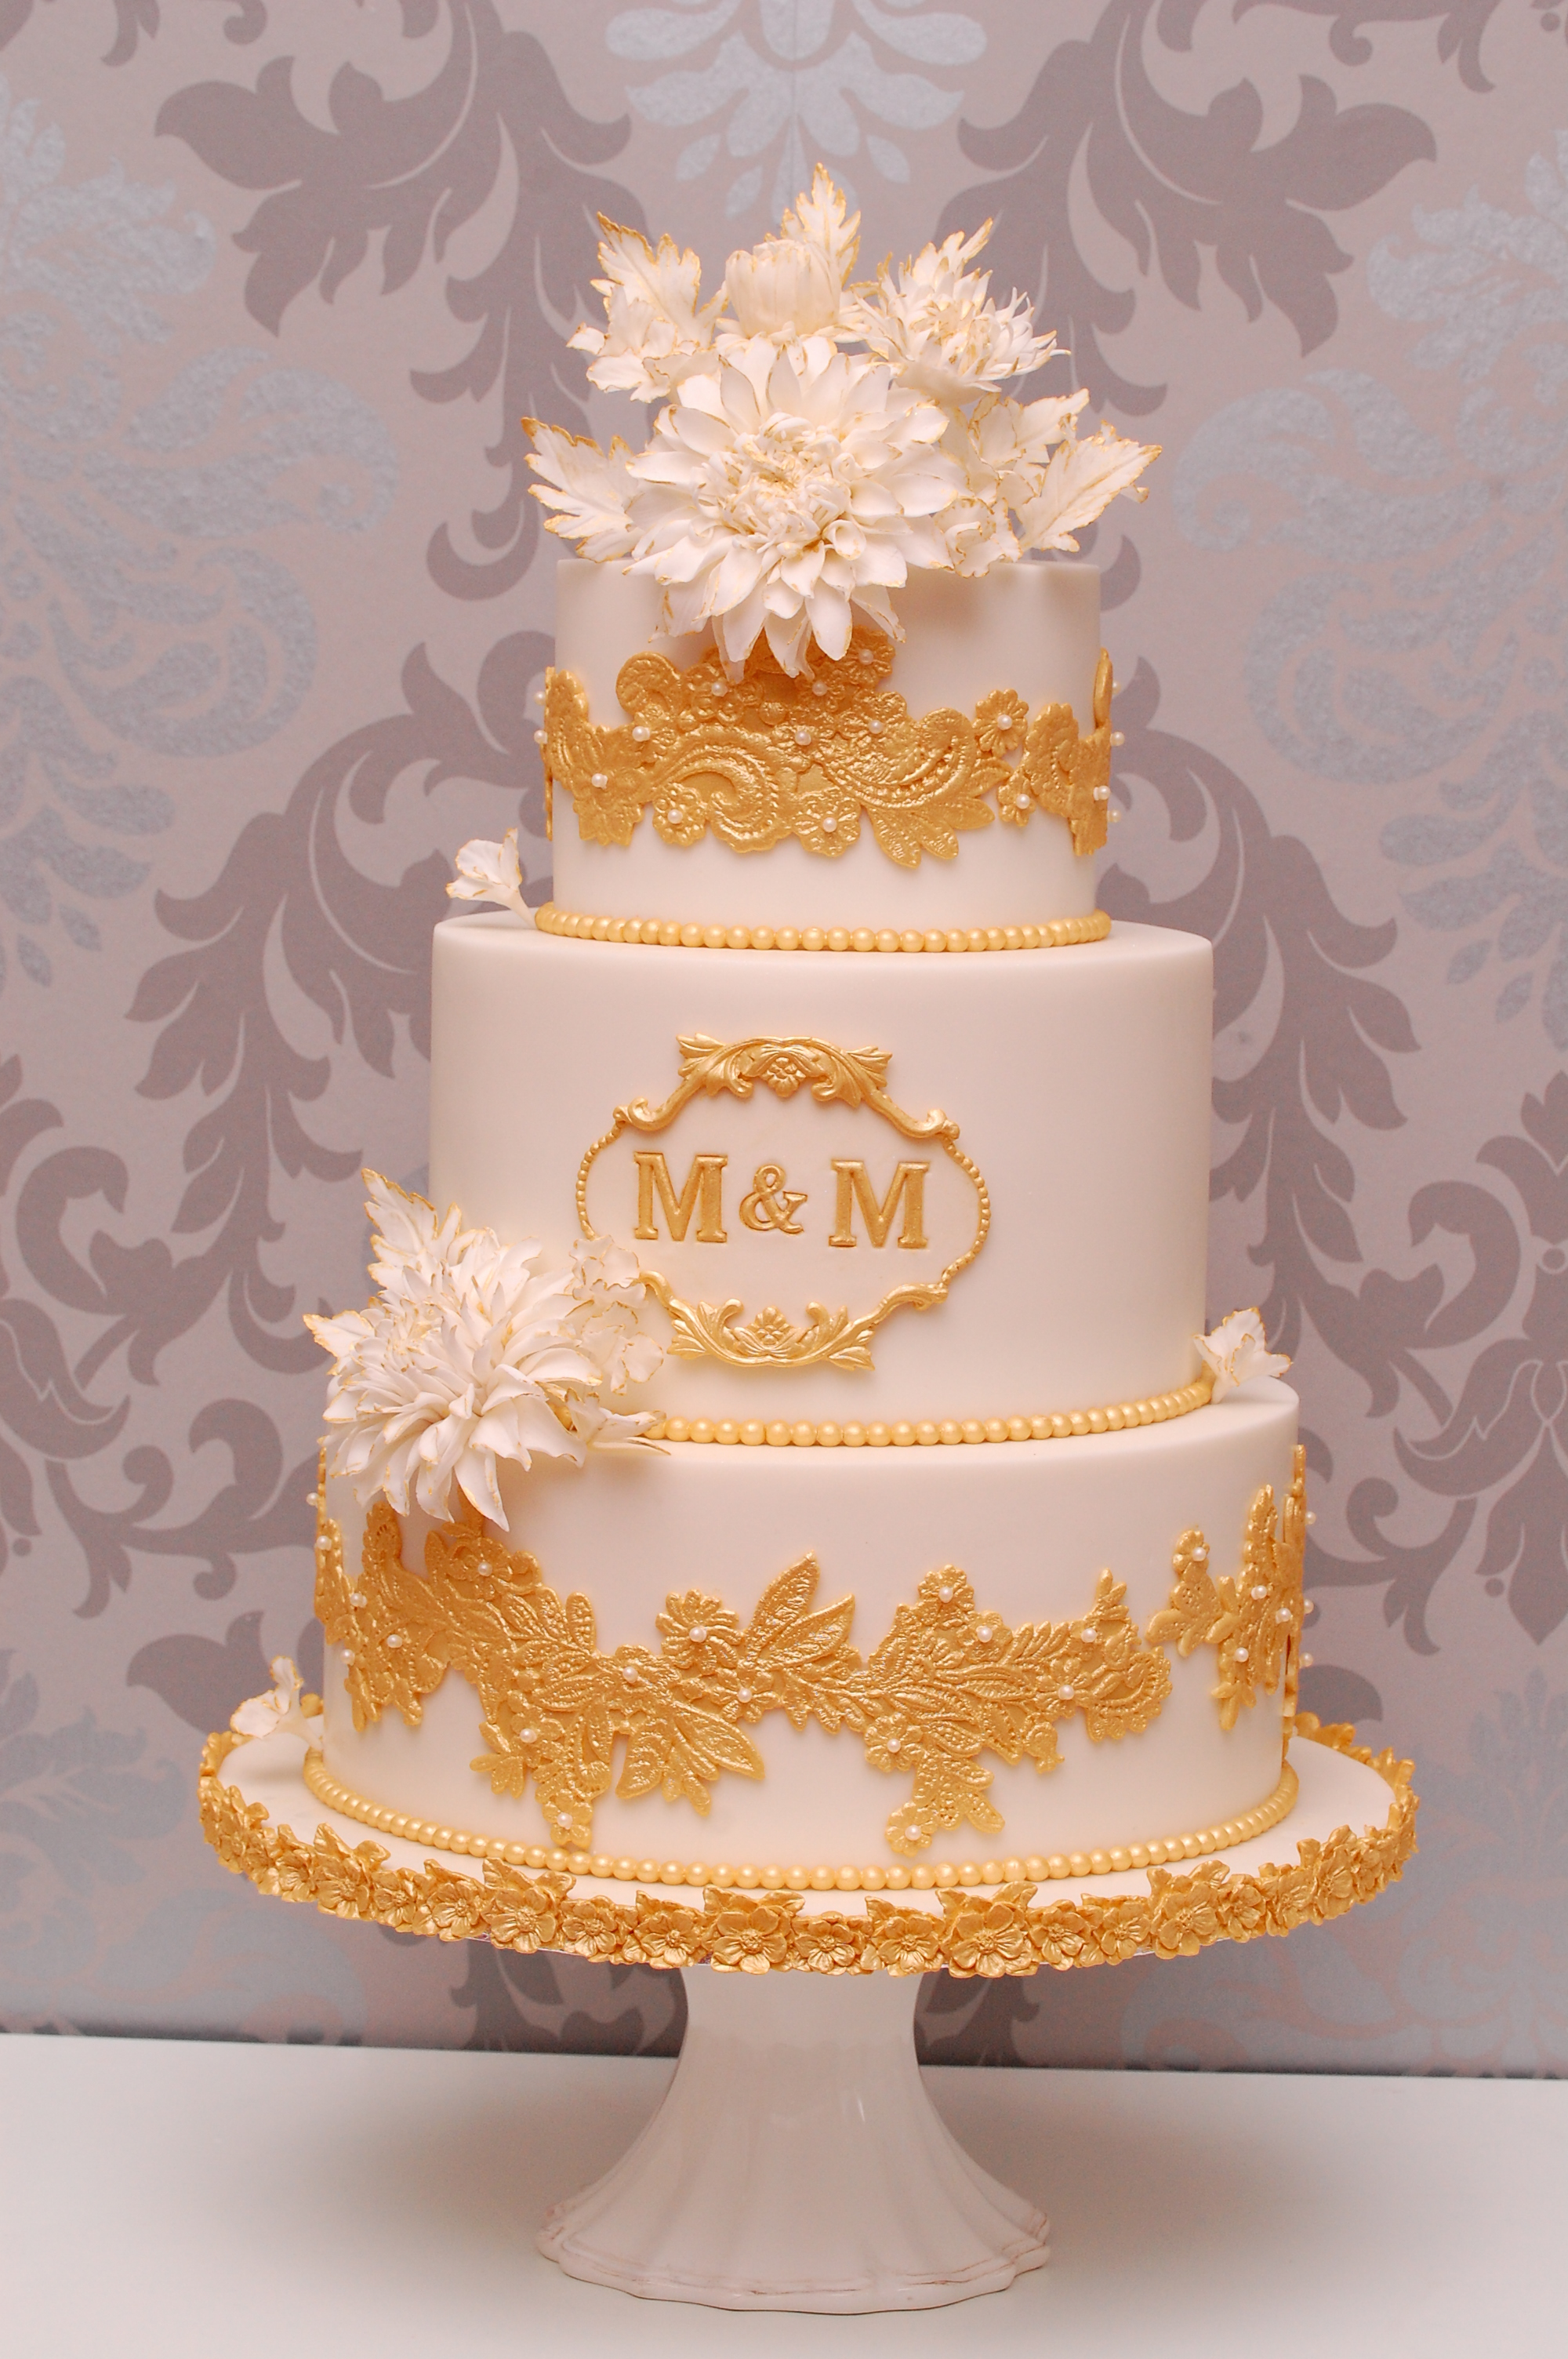 White with gold lace wedding